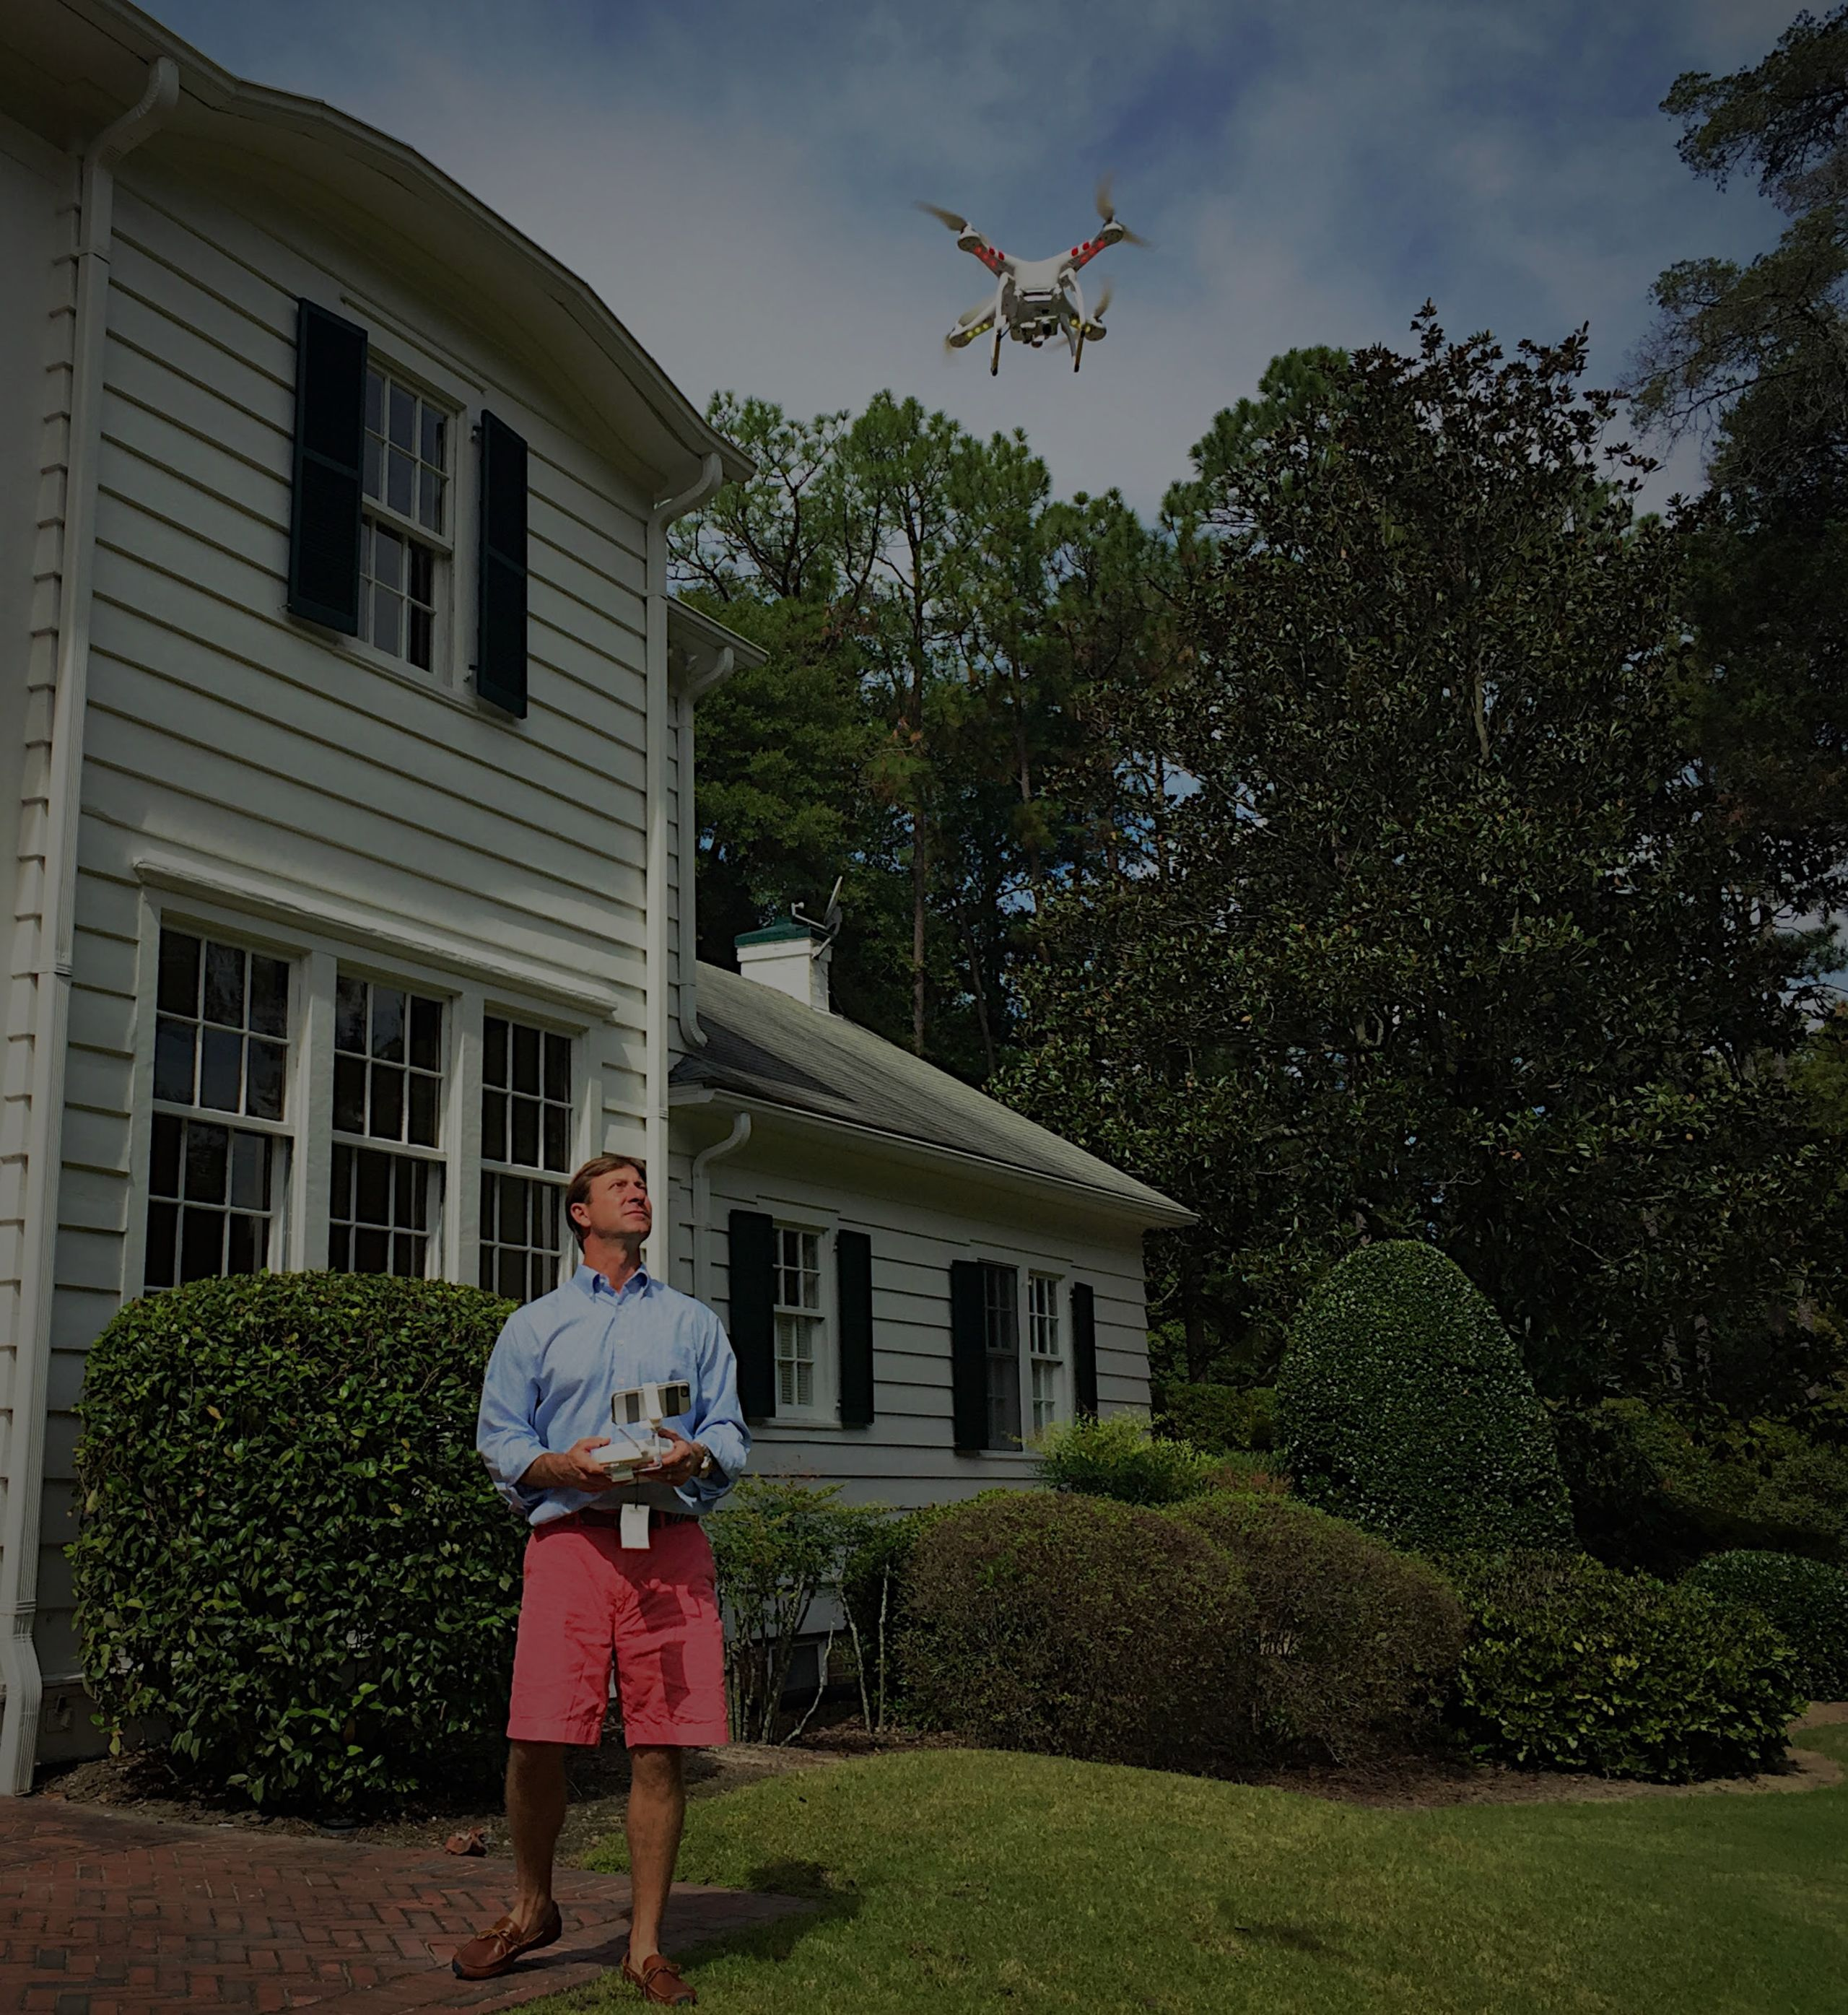 Drone Photograpgy for Real Estate- Yes We Can Do That!